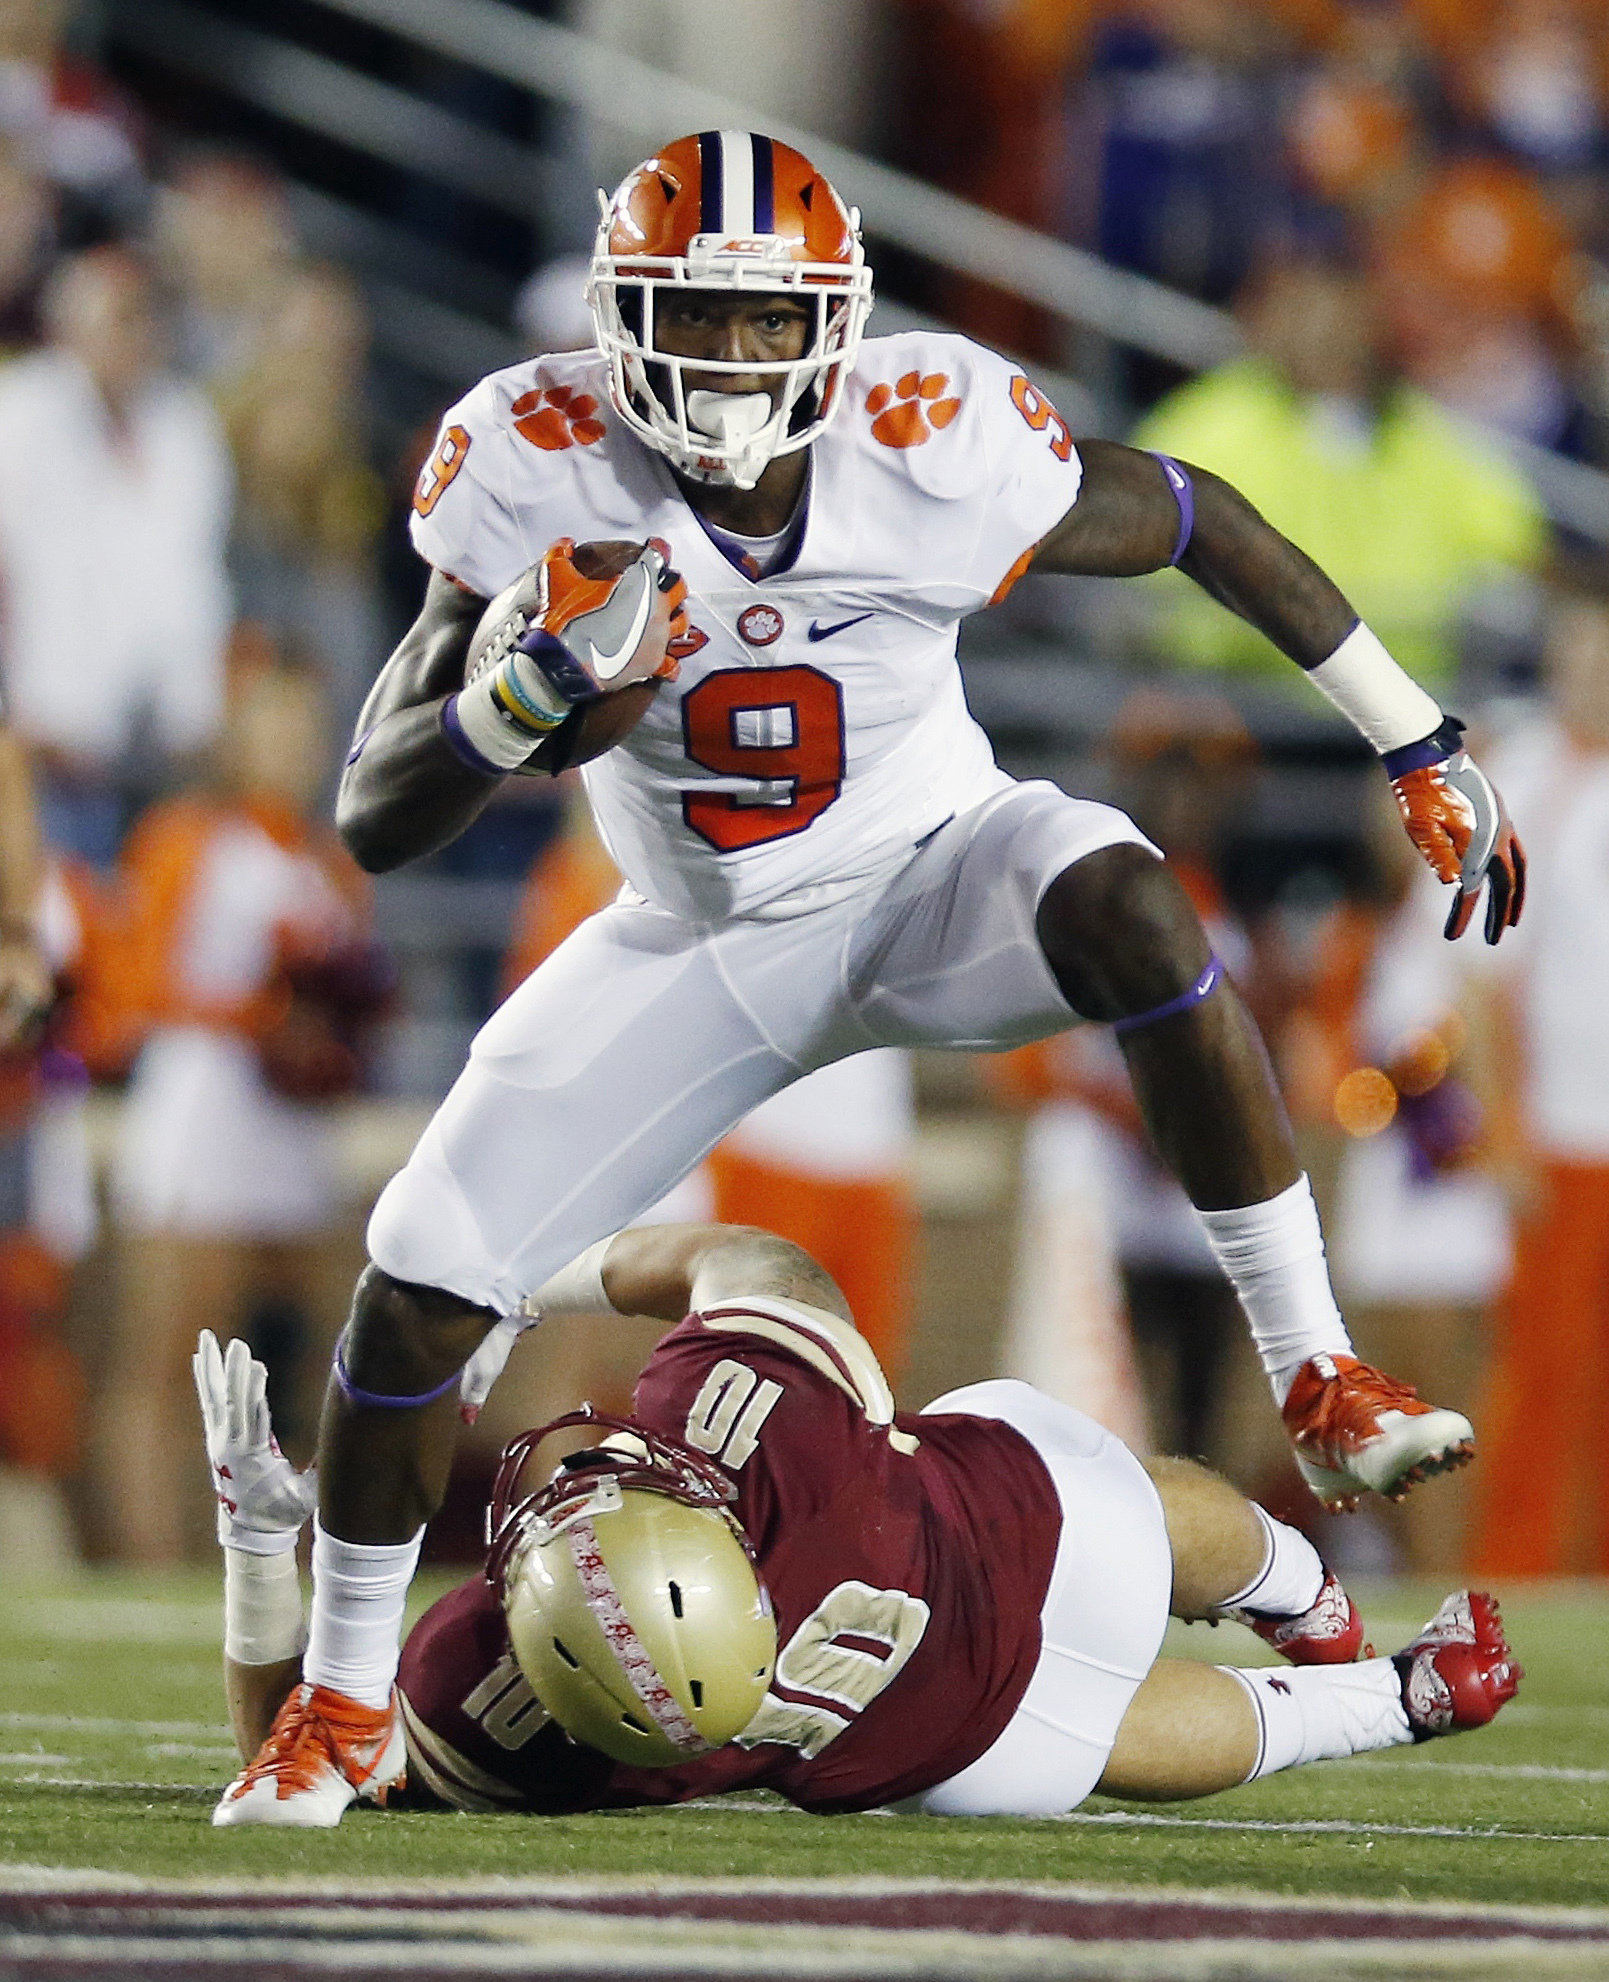 Clemson running back Wayne Gallman (9) gets past Boston College linebacker Ty Schwab (10) on a touchdown run during the first quarter of an NCAA college football game in Boston, Friday, Oct. 7, 2016. (AP Photo/Michael Dwyer)